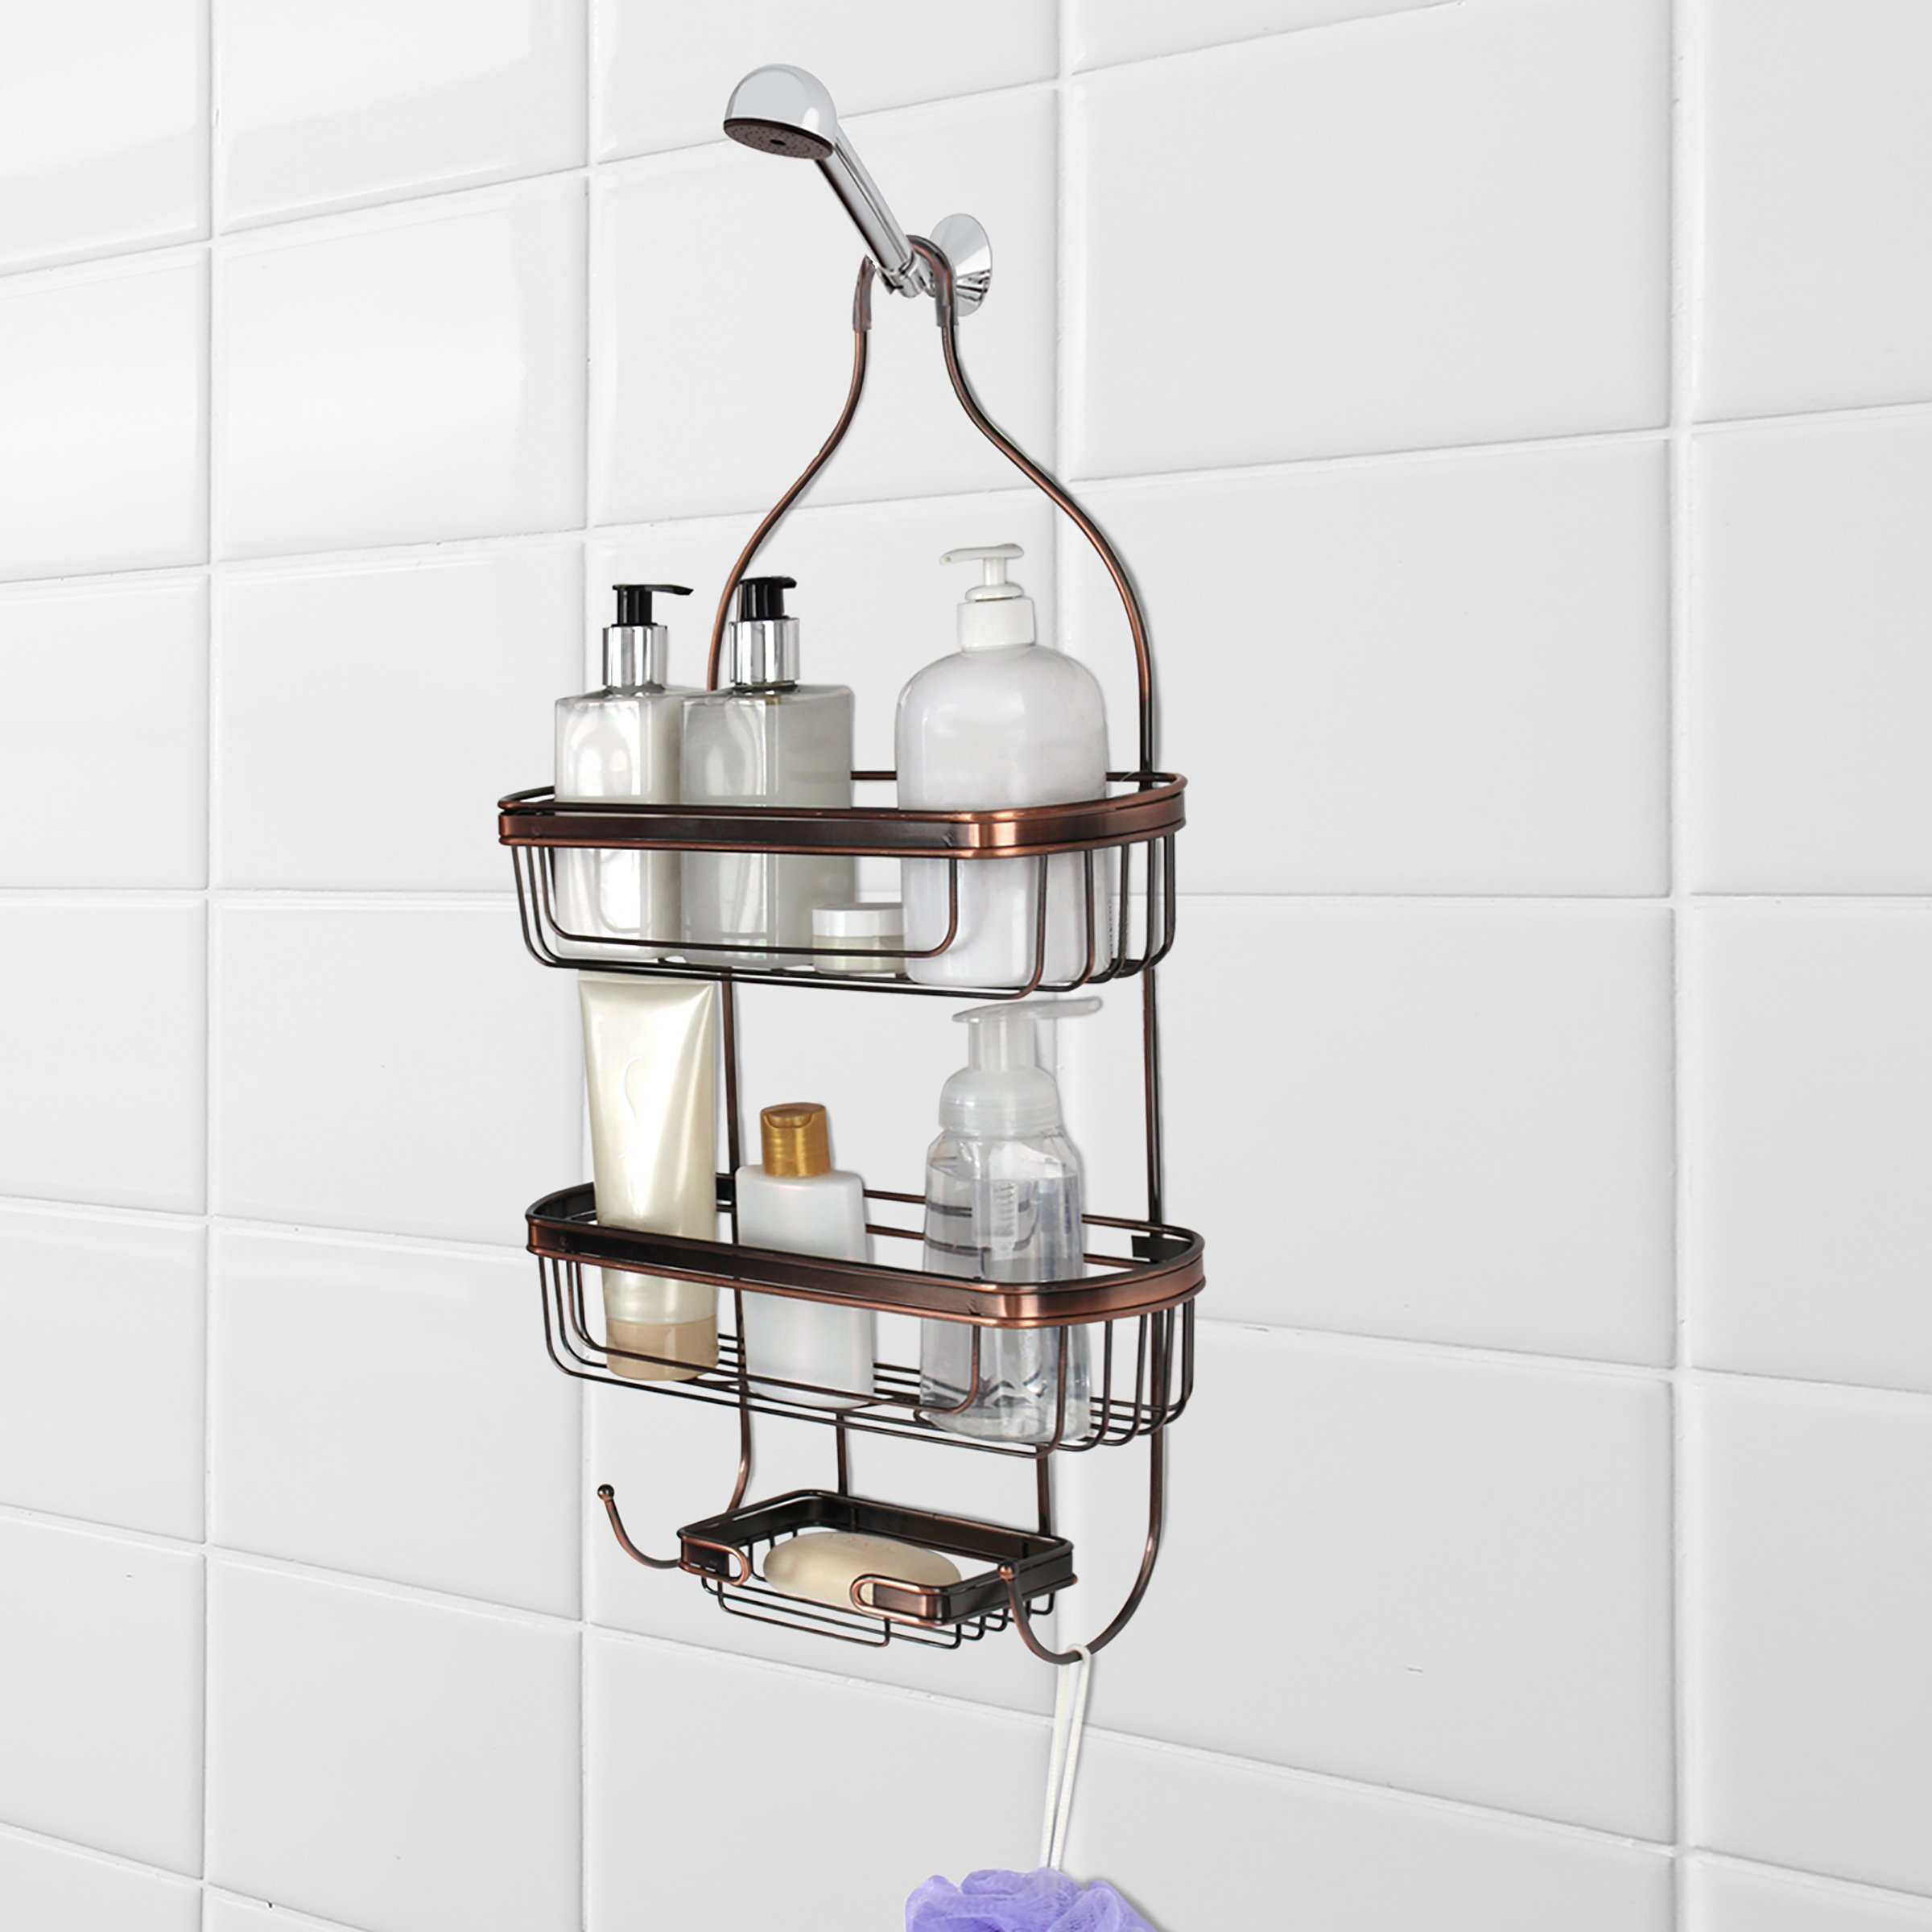 Splash Home Shower Caddy Bathroom Hanging Head with Two Basket Organizers Plus Dish for Storage Shelves for Shampoo, Conditioner and Soap, 24 x 15 x 12 Inches, Oil Rubbed Bronze